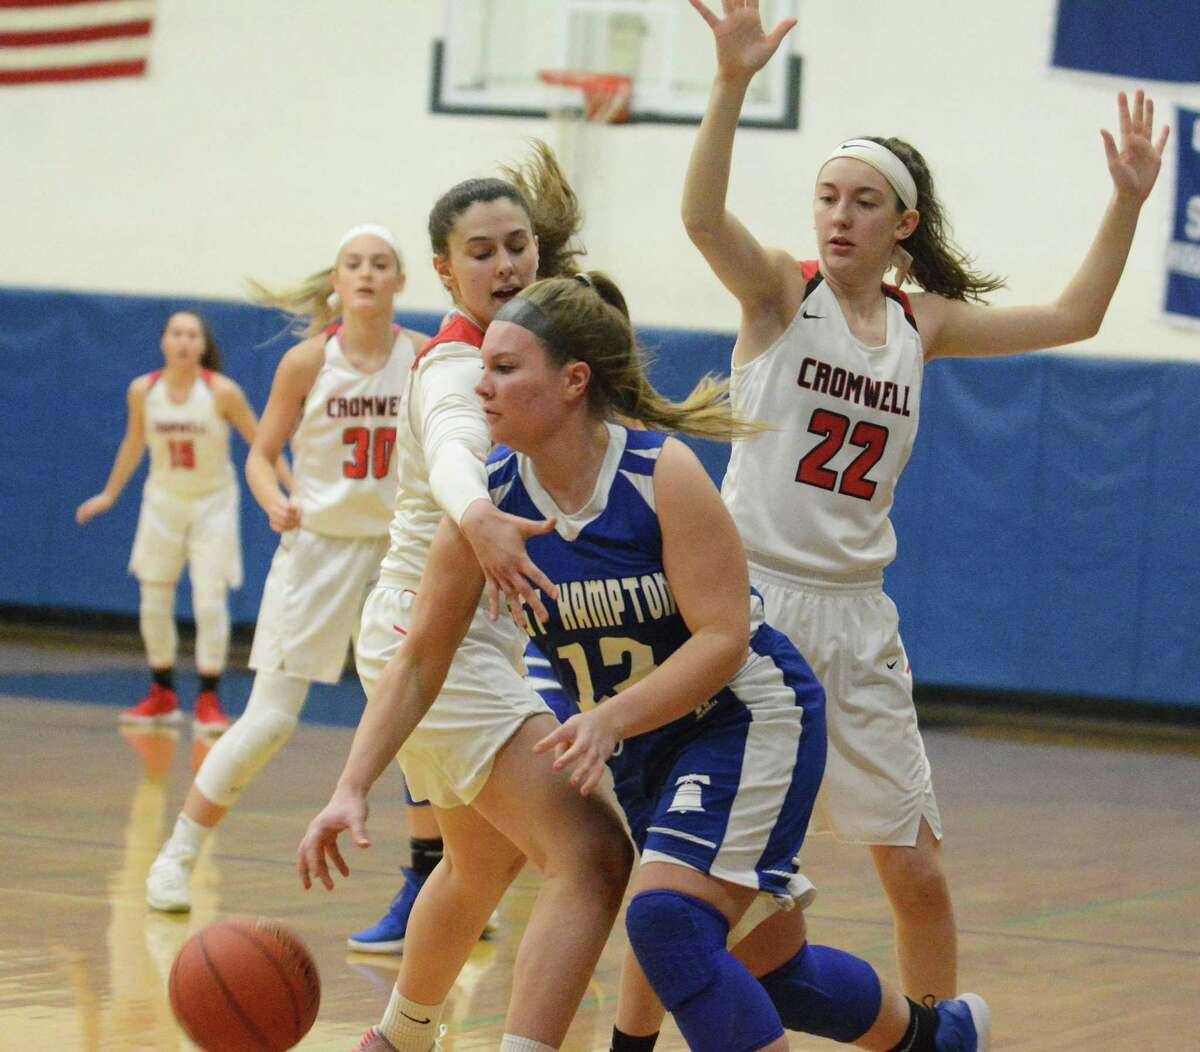 East Hampton's Rachel Vickery is surrounded by Cromwell's Najla Cecunjanin and Jessica DellaRatta (22) during Friday's Shoreline Conference championship game.